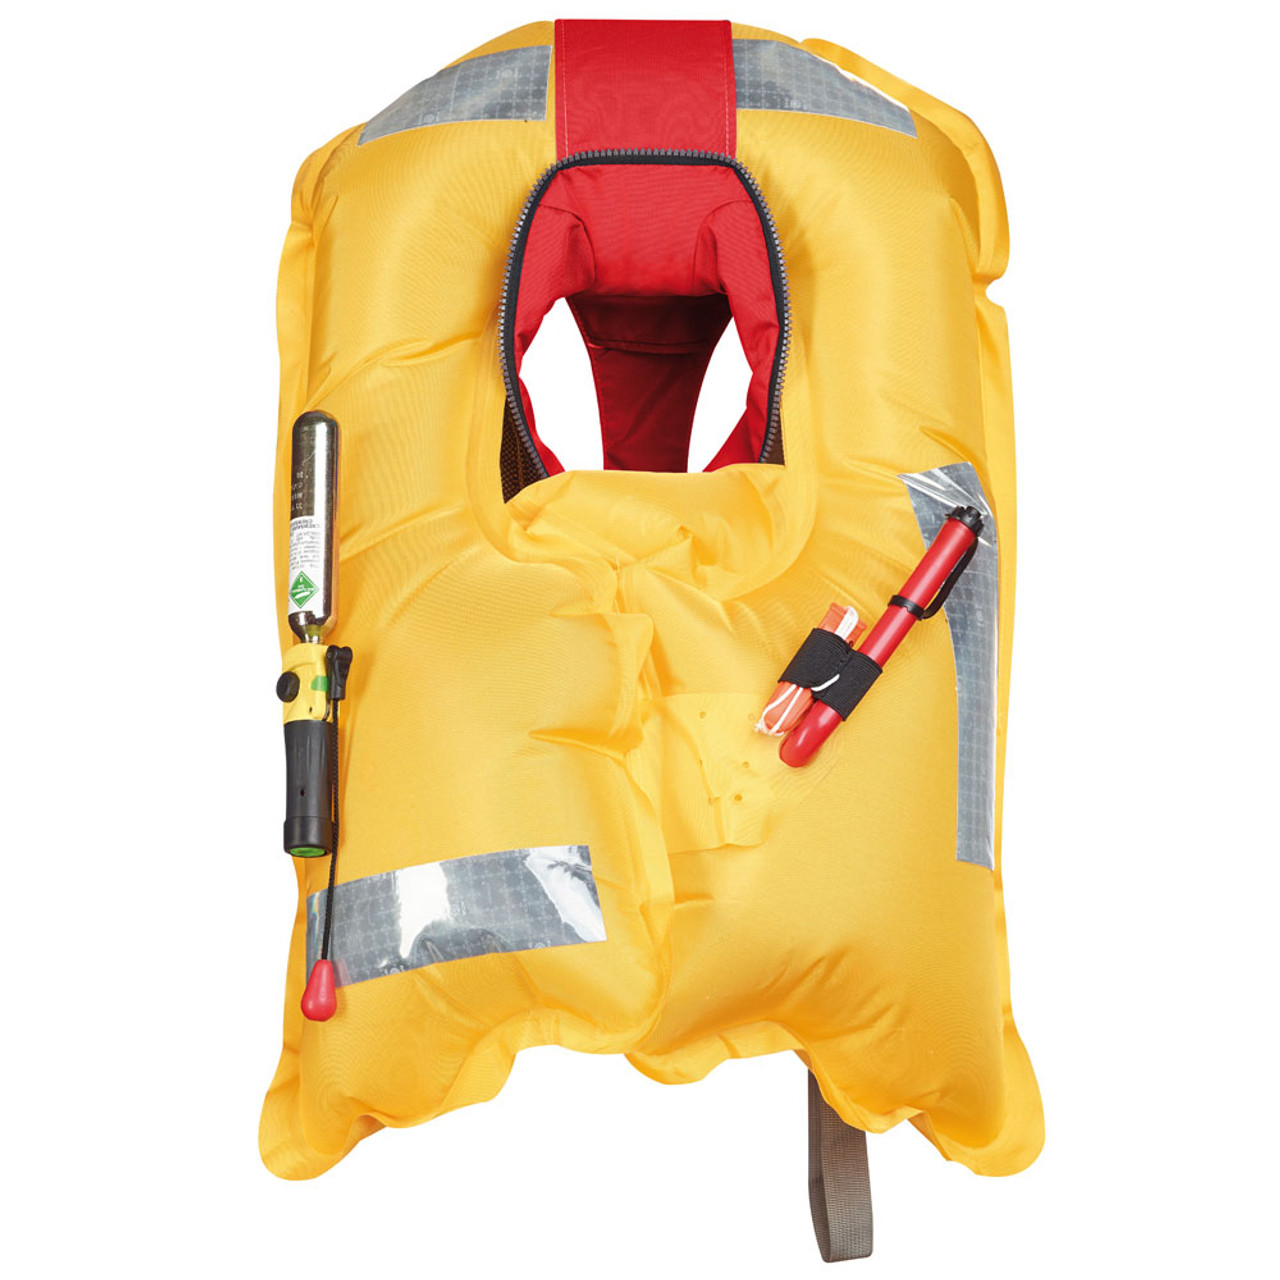 Life Jacket Crewsaver Crewfit Fiery Red Sport 165N Manual Inflatable